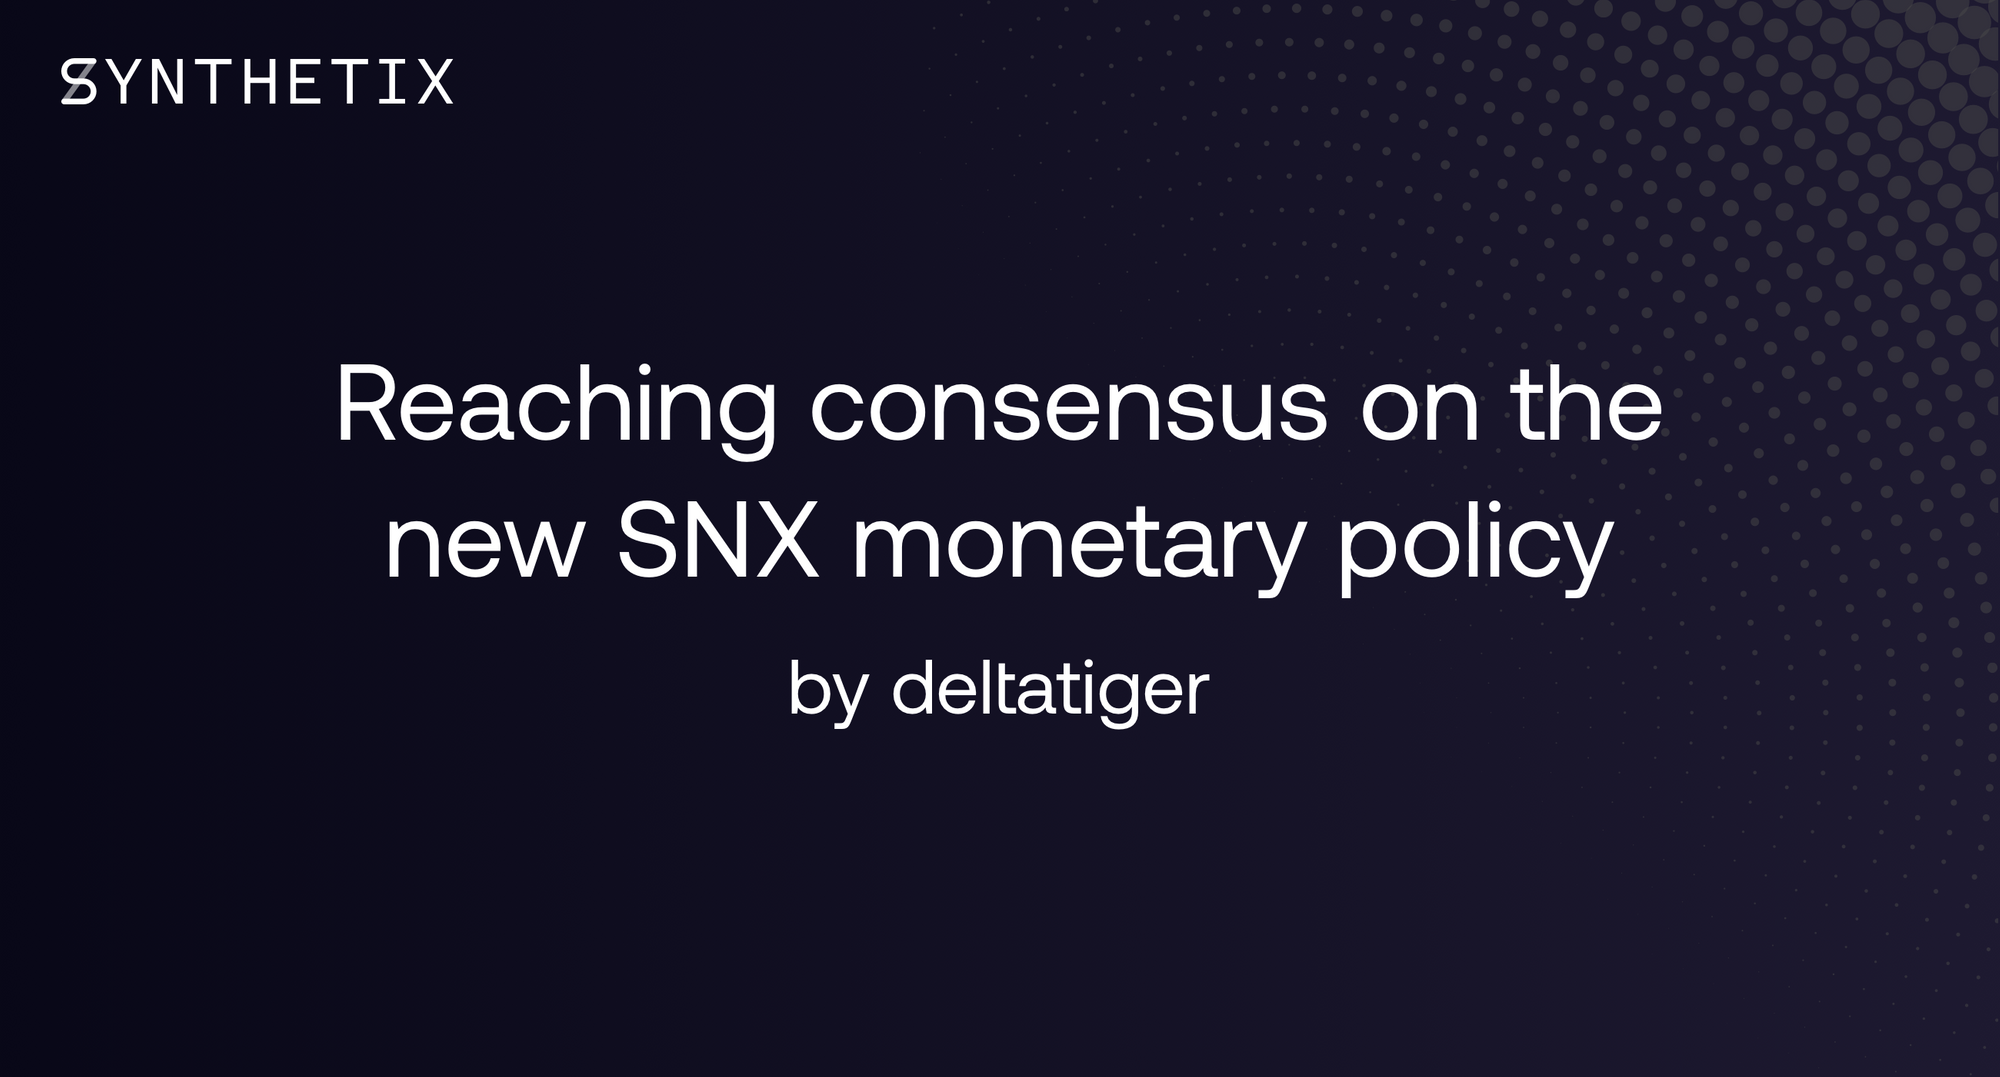 Reaching consensus on the new SNX monetary policy